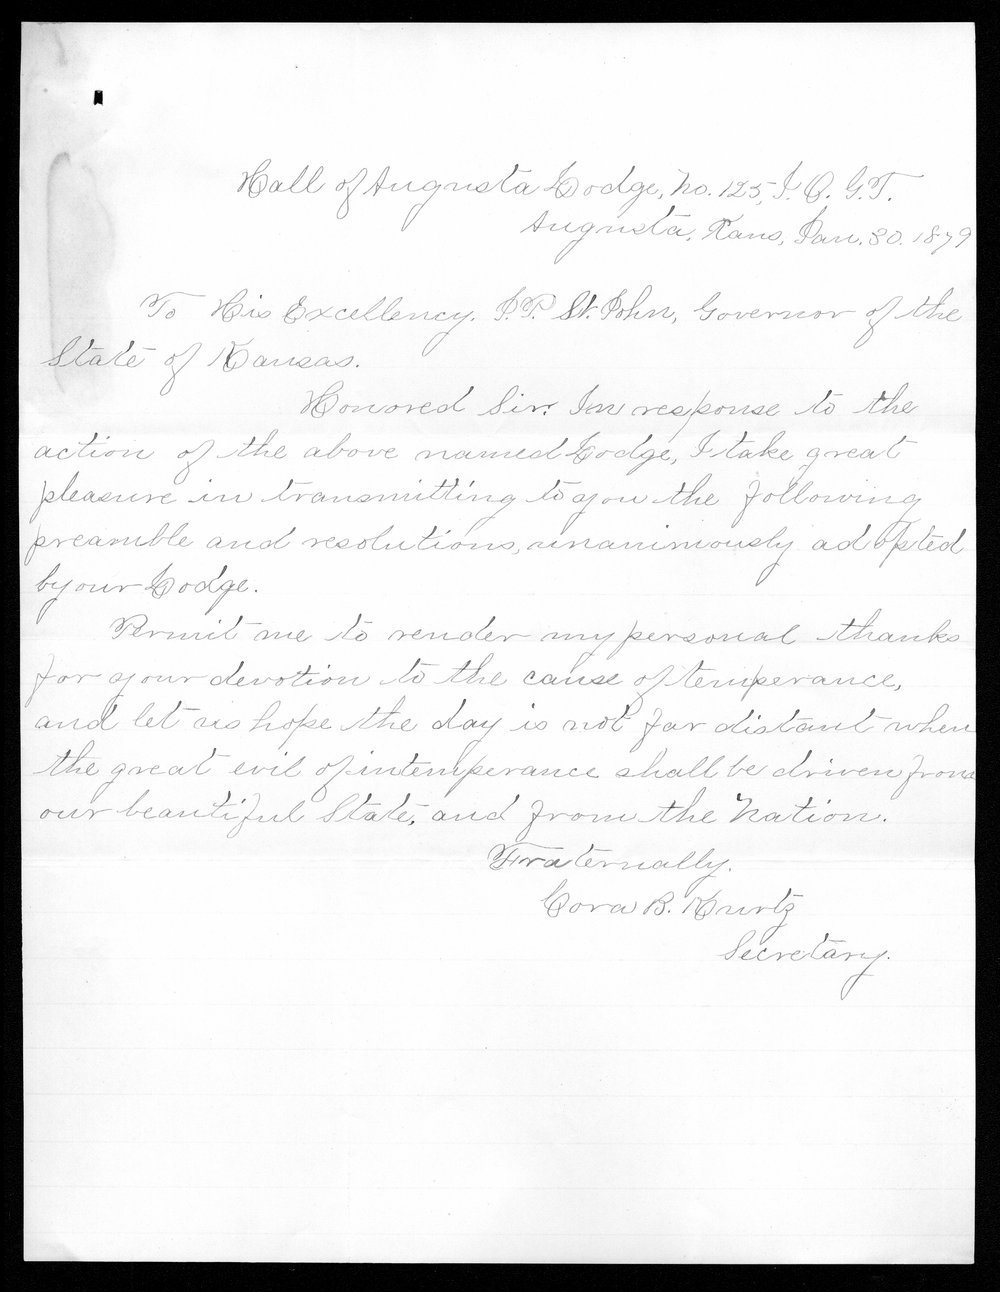 Governor John St. John prohibition received correspondence - 11